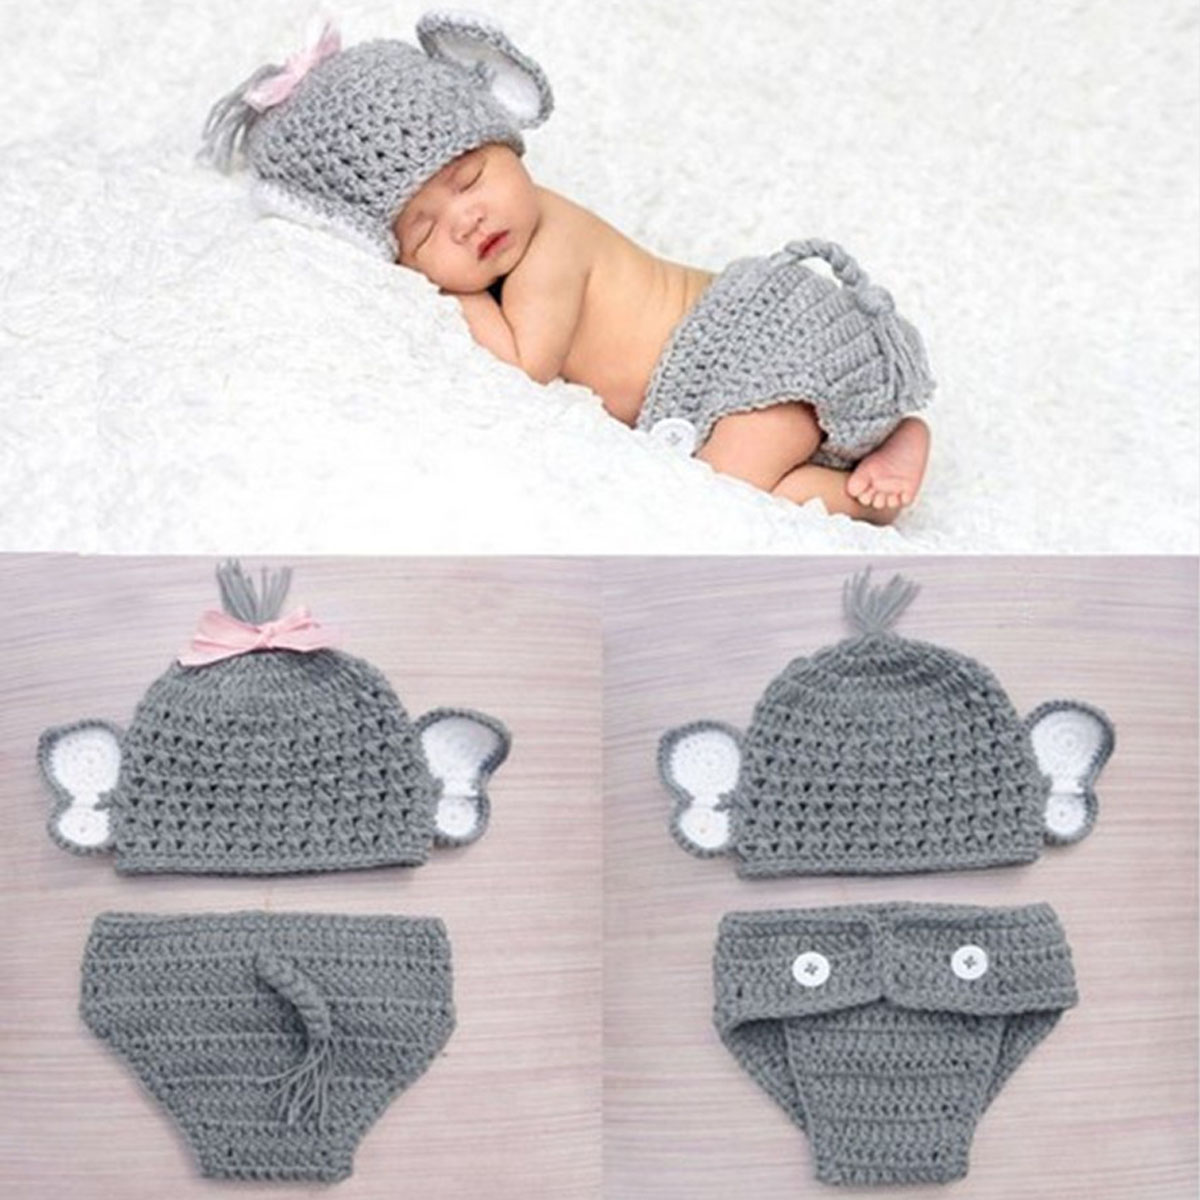 Newborn Baby Girls Boys Elephant Costume Baby Boy Girl Animal Knit Crochet Elephant Hat Briefs Clothes Set Photo Prop Outfits newborn baby cute crochet knit costume prop outfits photo photography baby hat photo props new born baby girls cute outfits